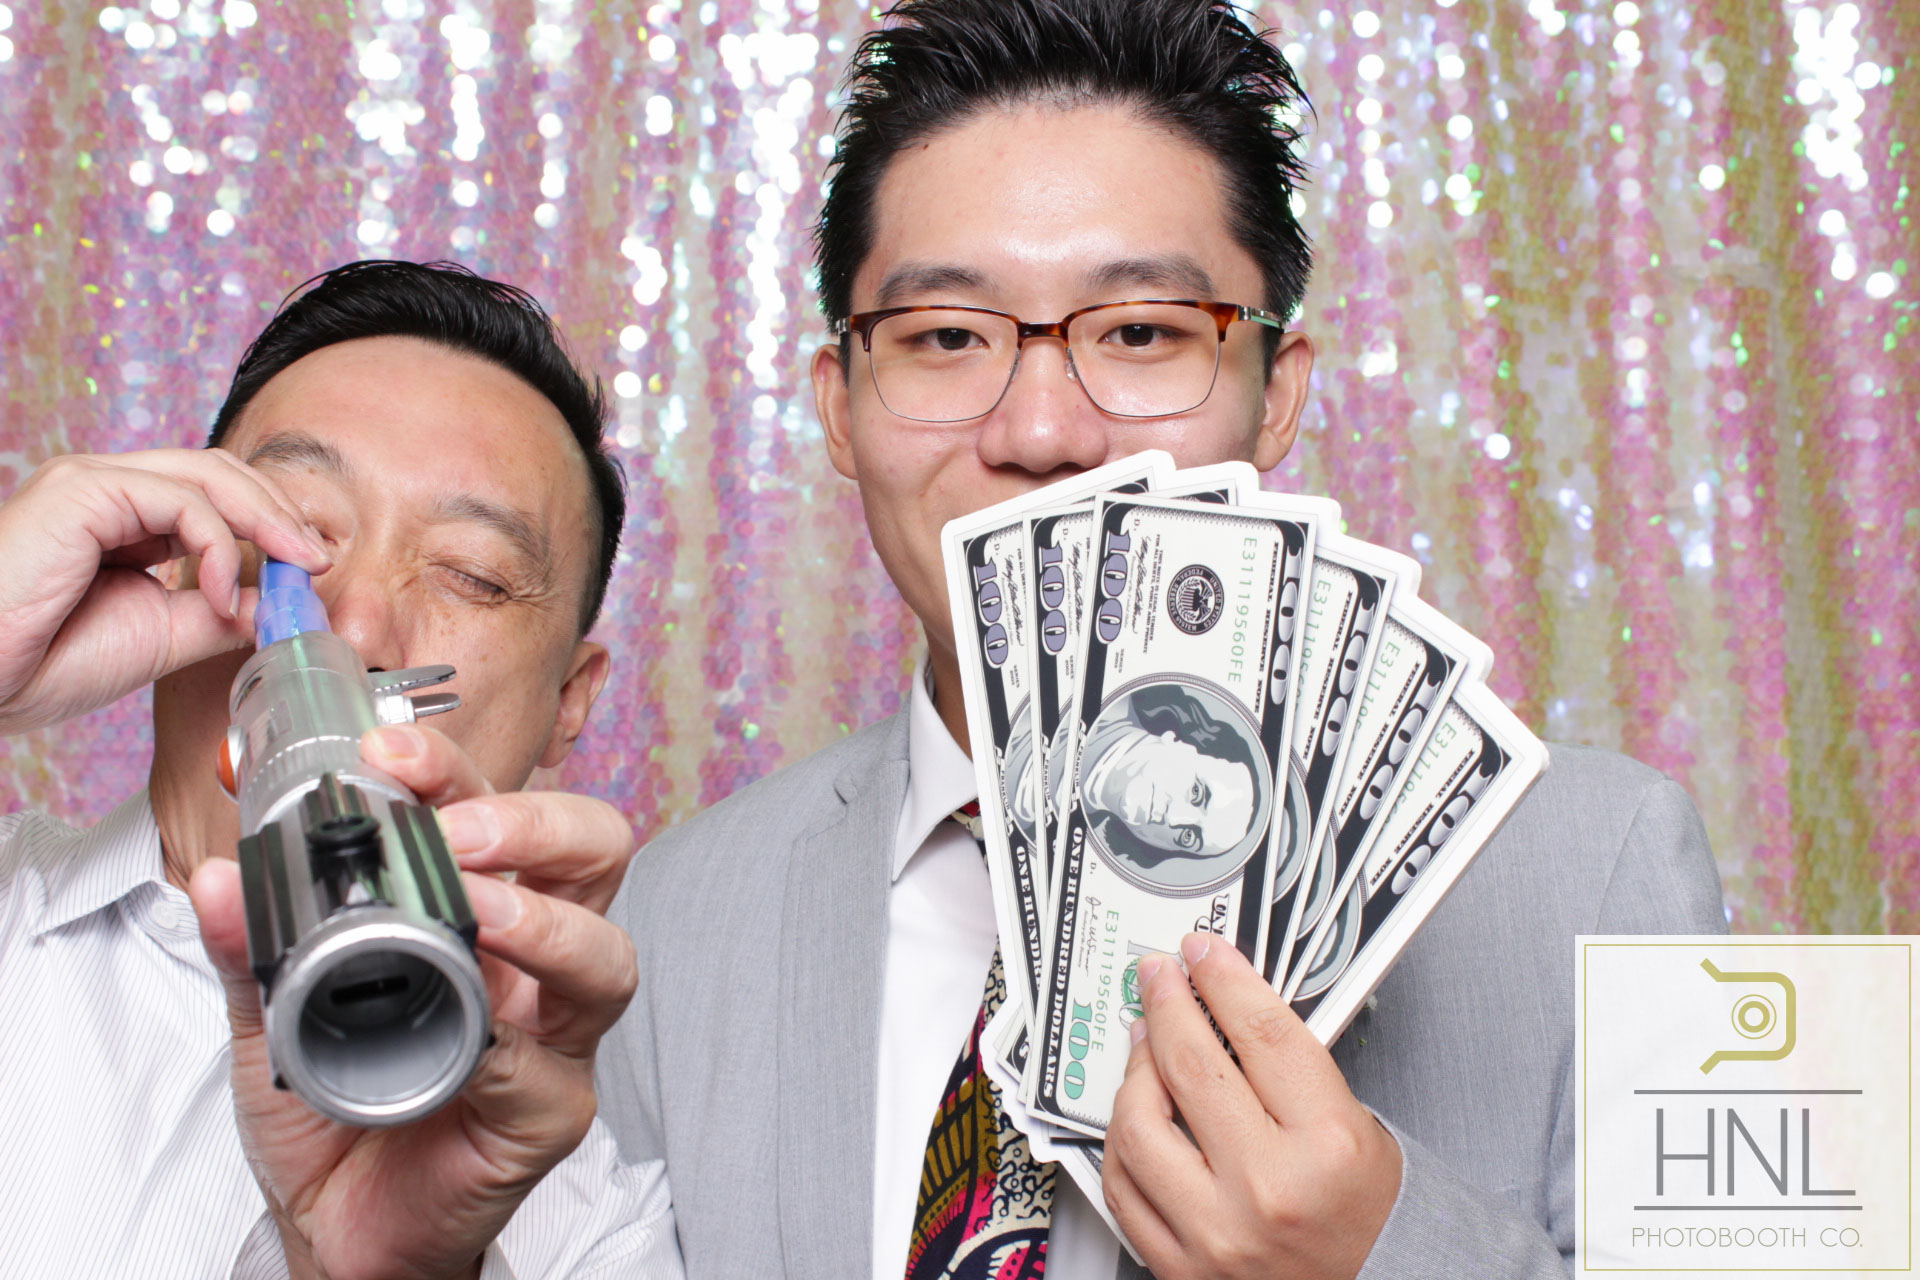 Yemi and Yang Wedding Photo booth Hiltion Hawaiian Village Resort Waikiki Oahu Hawaii -11.jpg